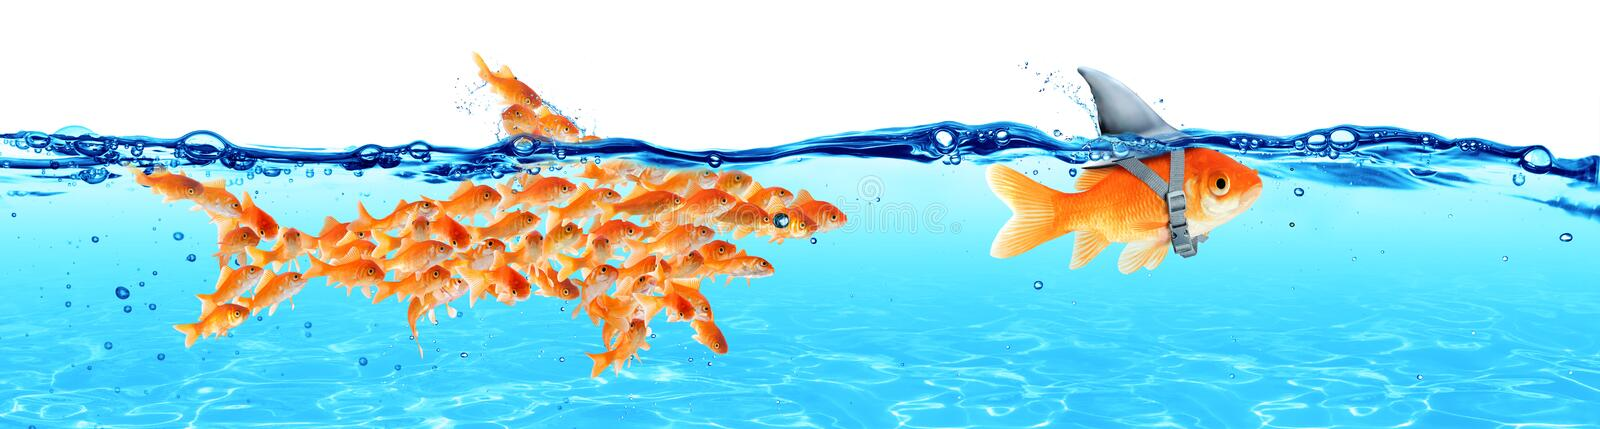 Business - Leadership And Teamwork Concept stock photography